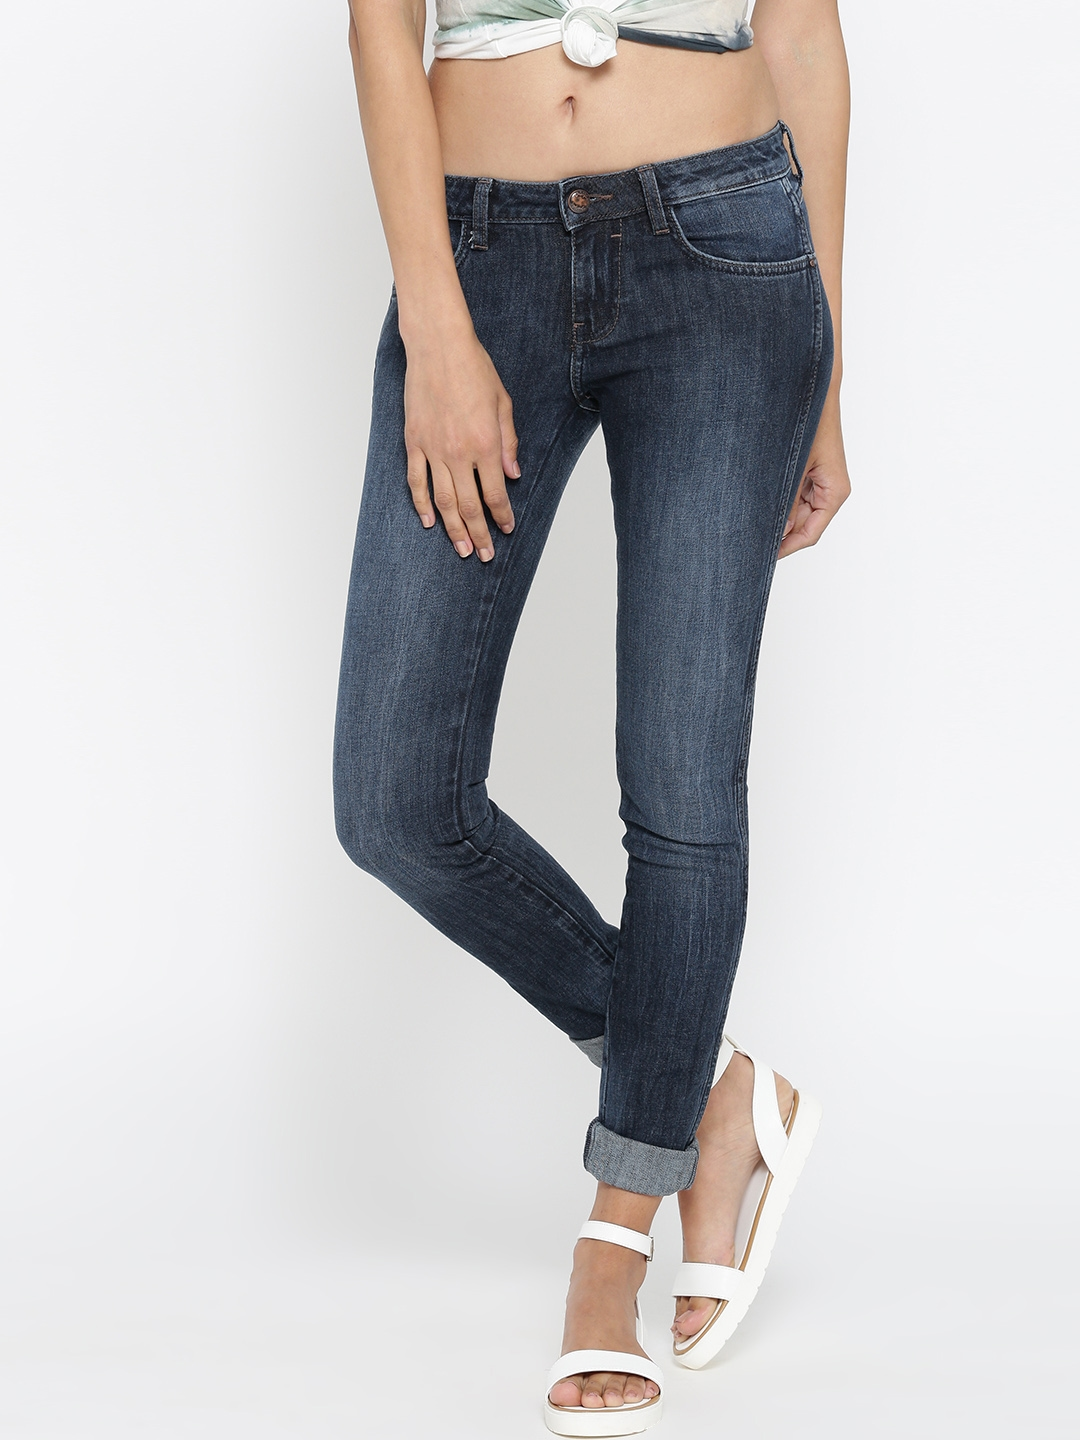 39b3e2c3ac394 Buy Wrangler Blue Low Rise Jeggings Fit Stretchable Jeans - Jeans ...